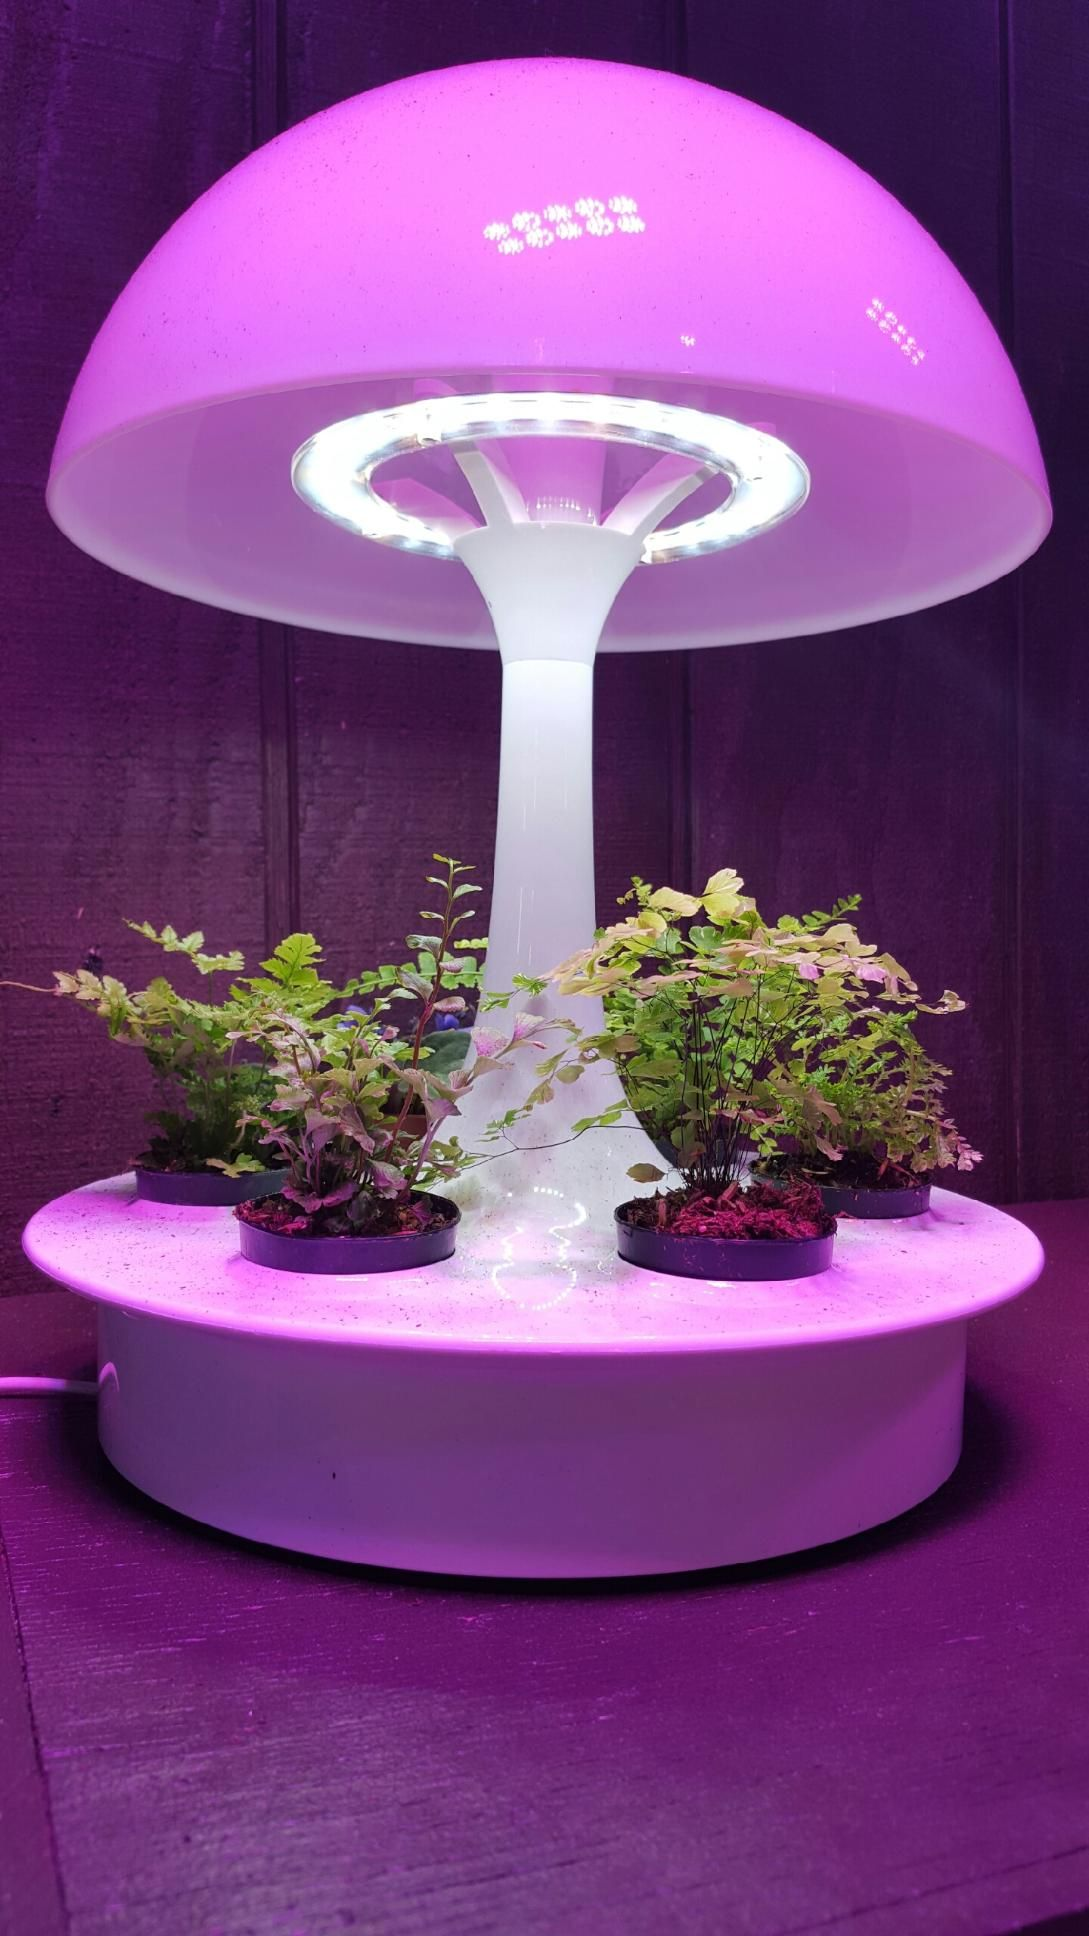 pin show hydroponically modern use light indoors to homesteading at gardening pinterest grow classes when on night their wednesday by hydroponic the lights greenery diy growing best weekly